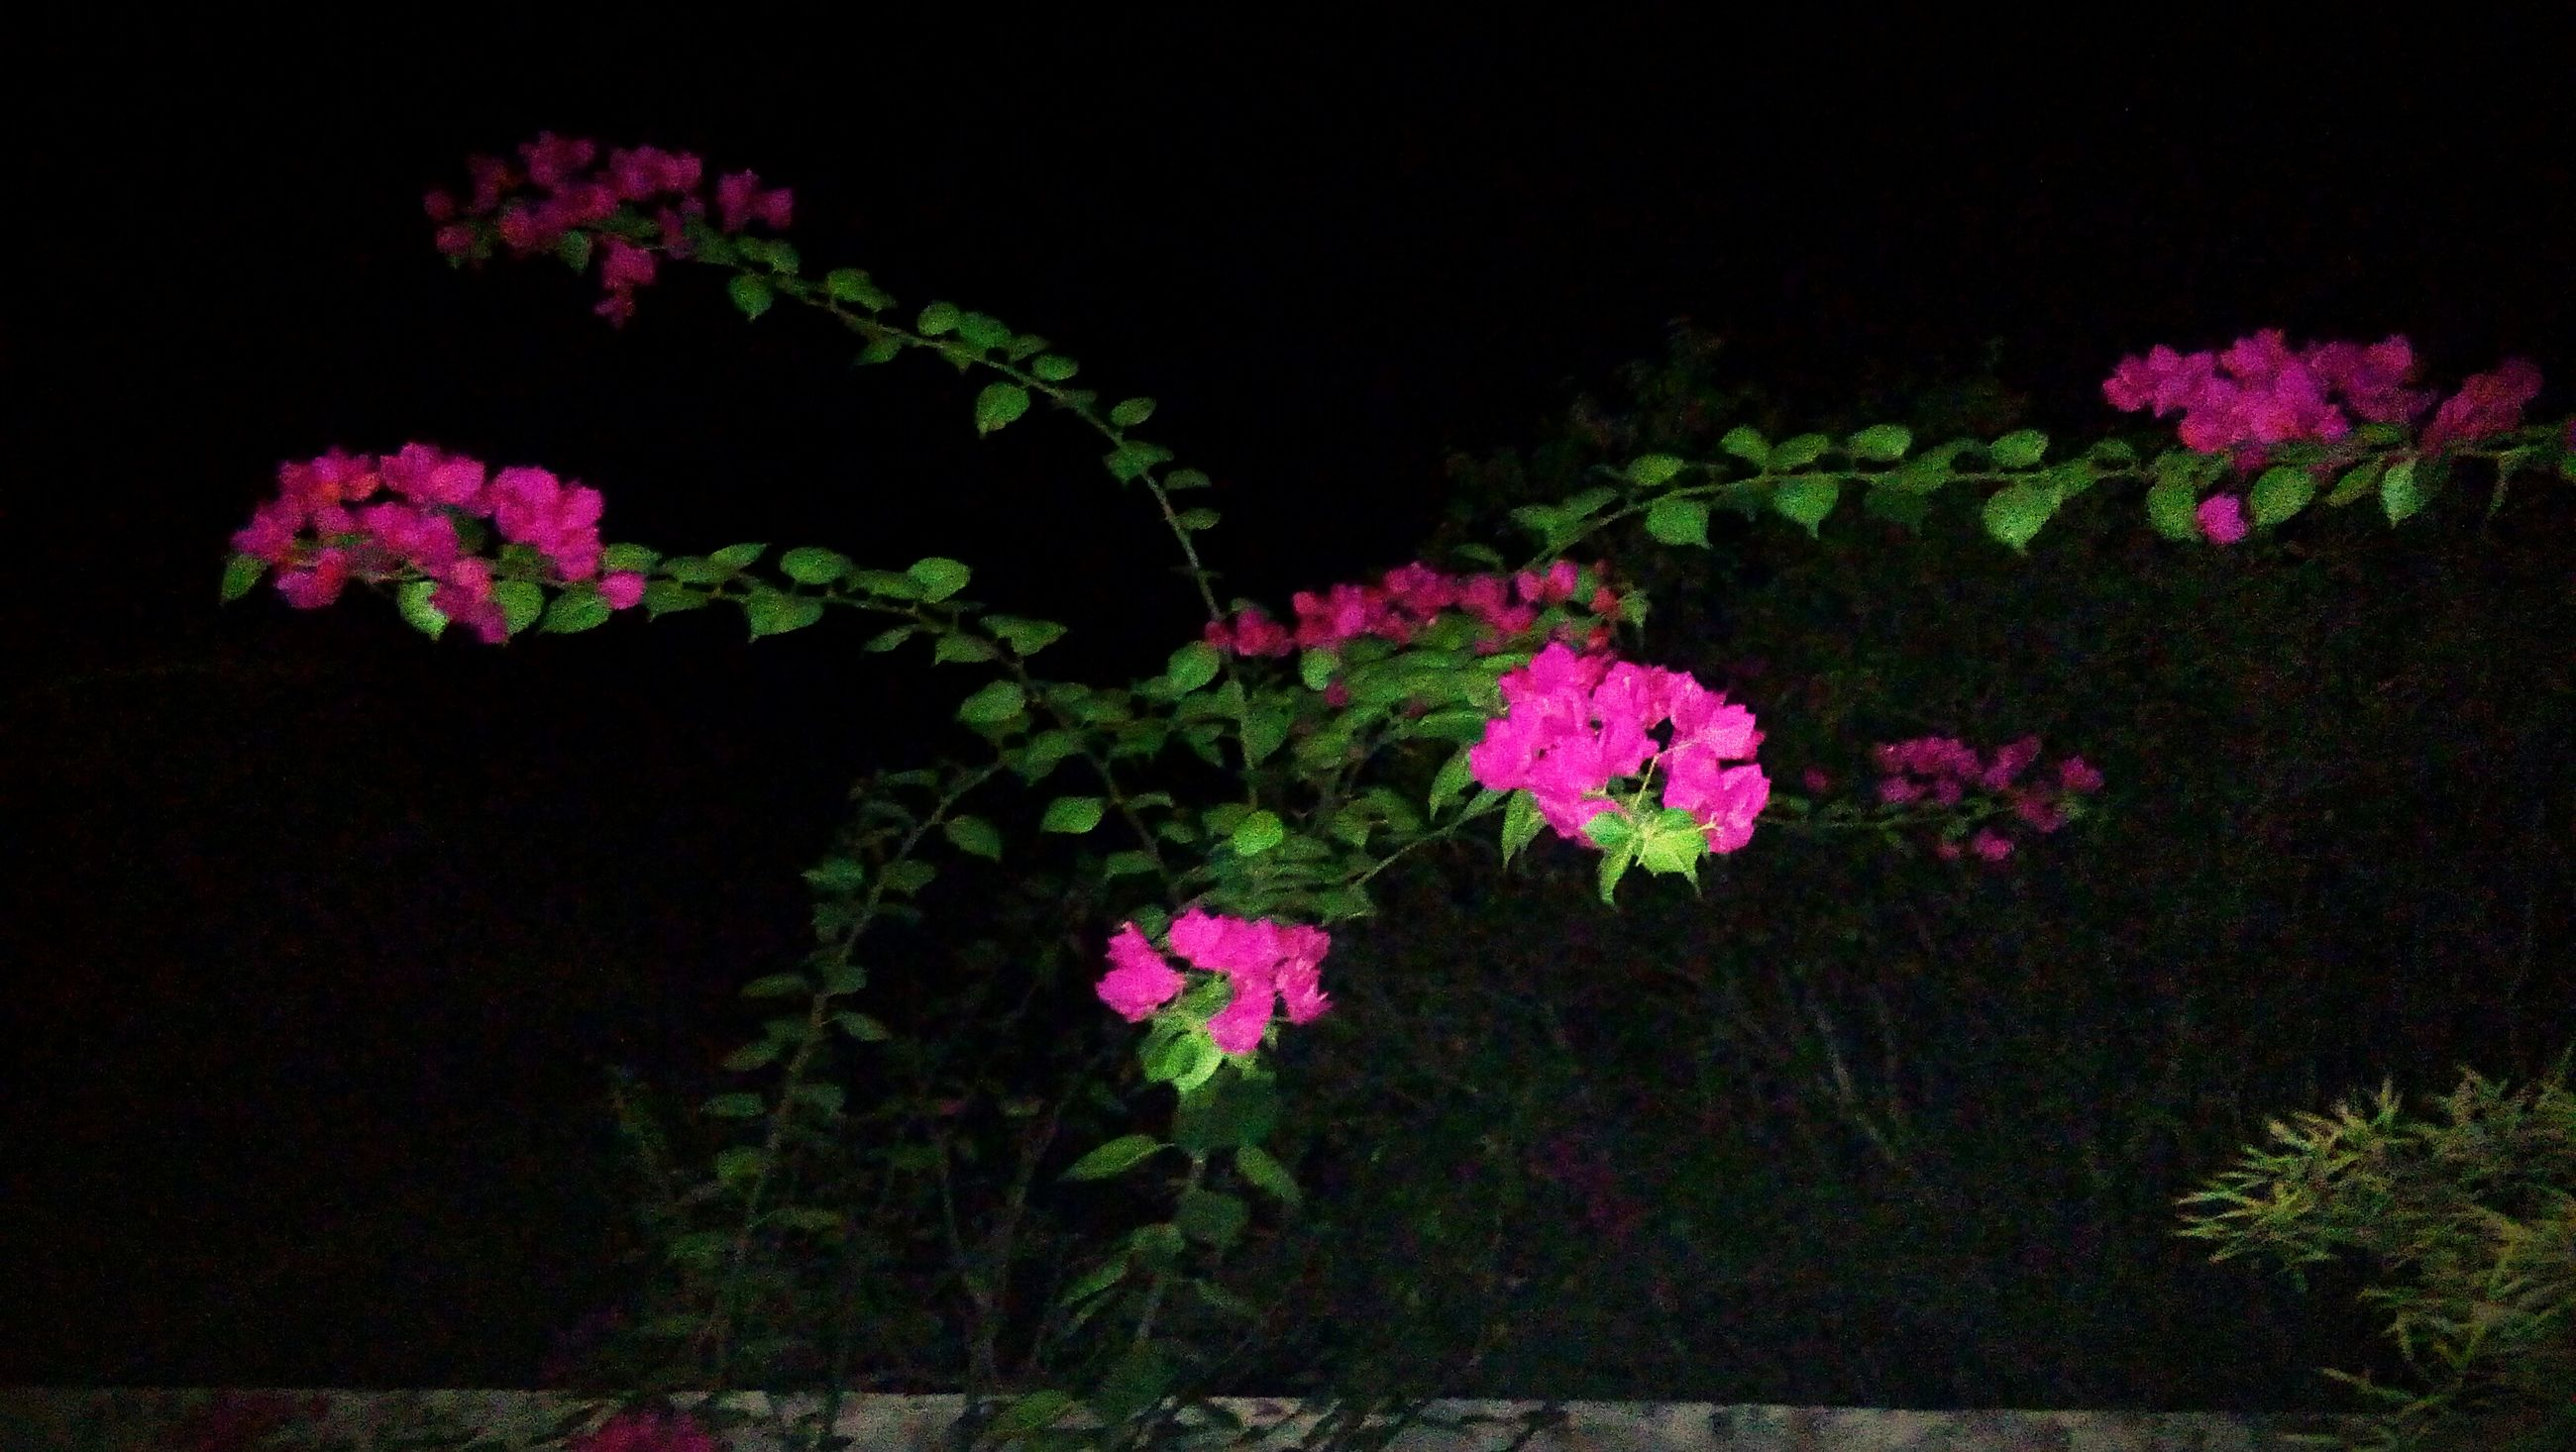 flower, growth, pink color, plant, freshness, fragility, nature, blooming, no people, beauty in nature, night, outdoors, flower head, close-up